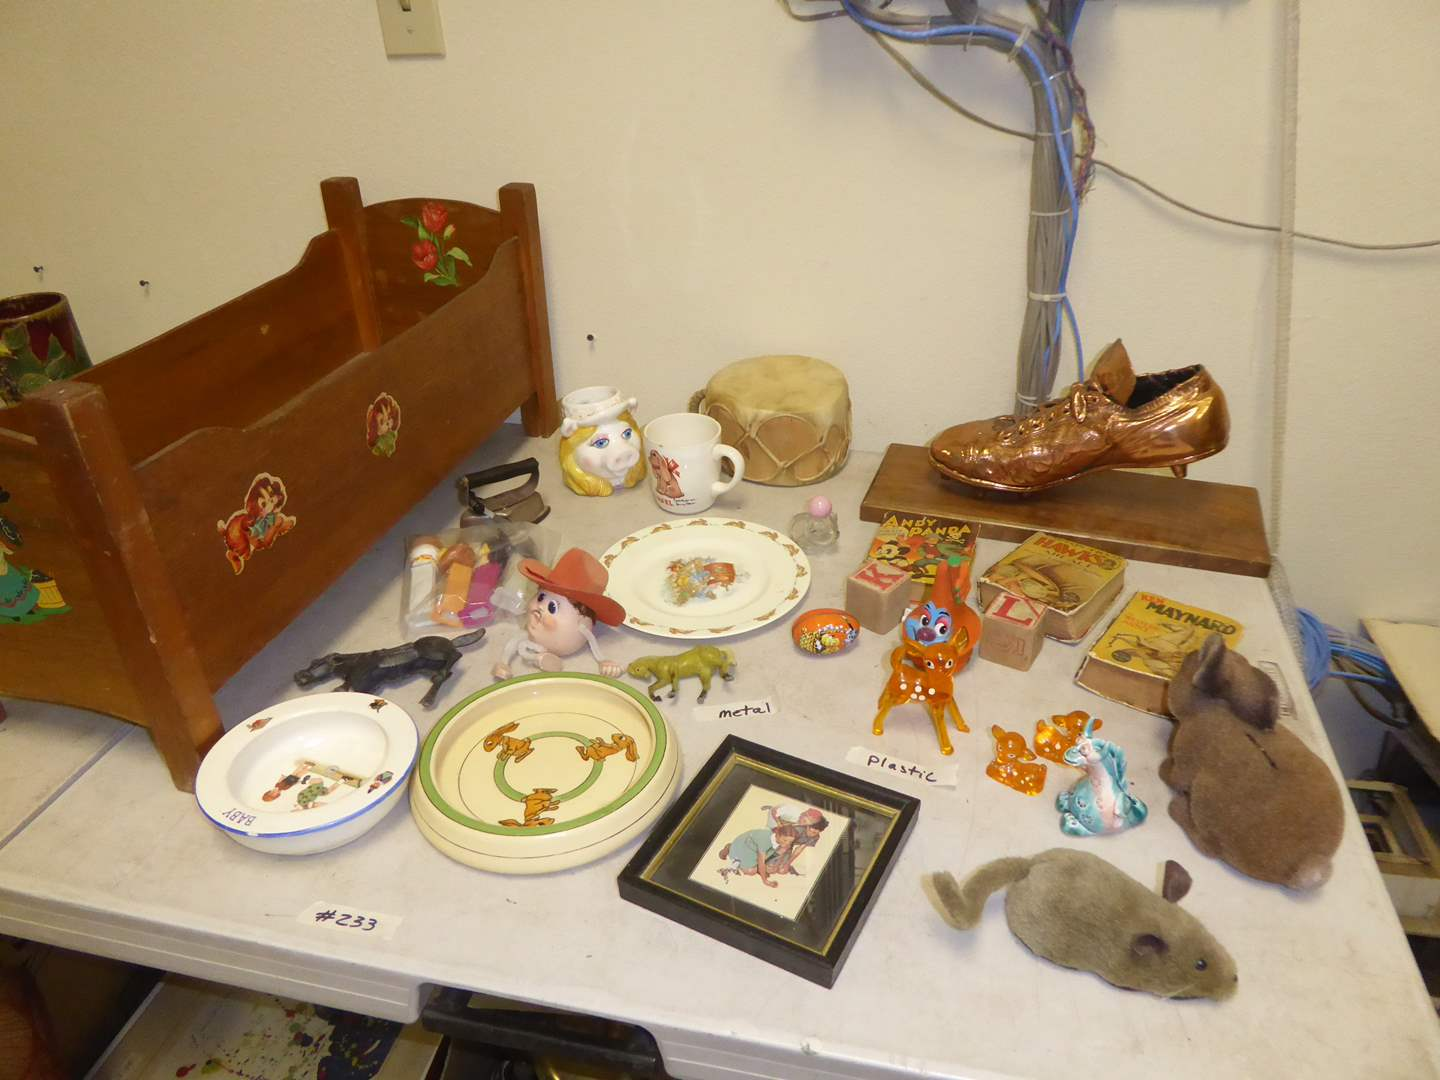 Lot # 233 - Vintage Toys, Sad Iron, Doll Bed & Collectibles  (main image)